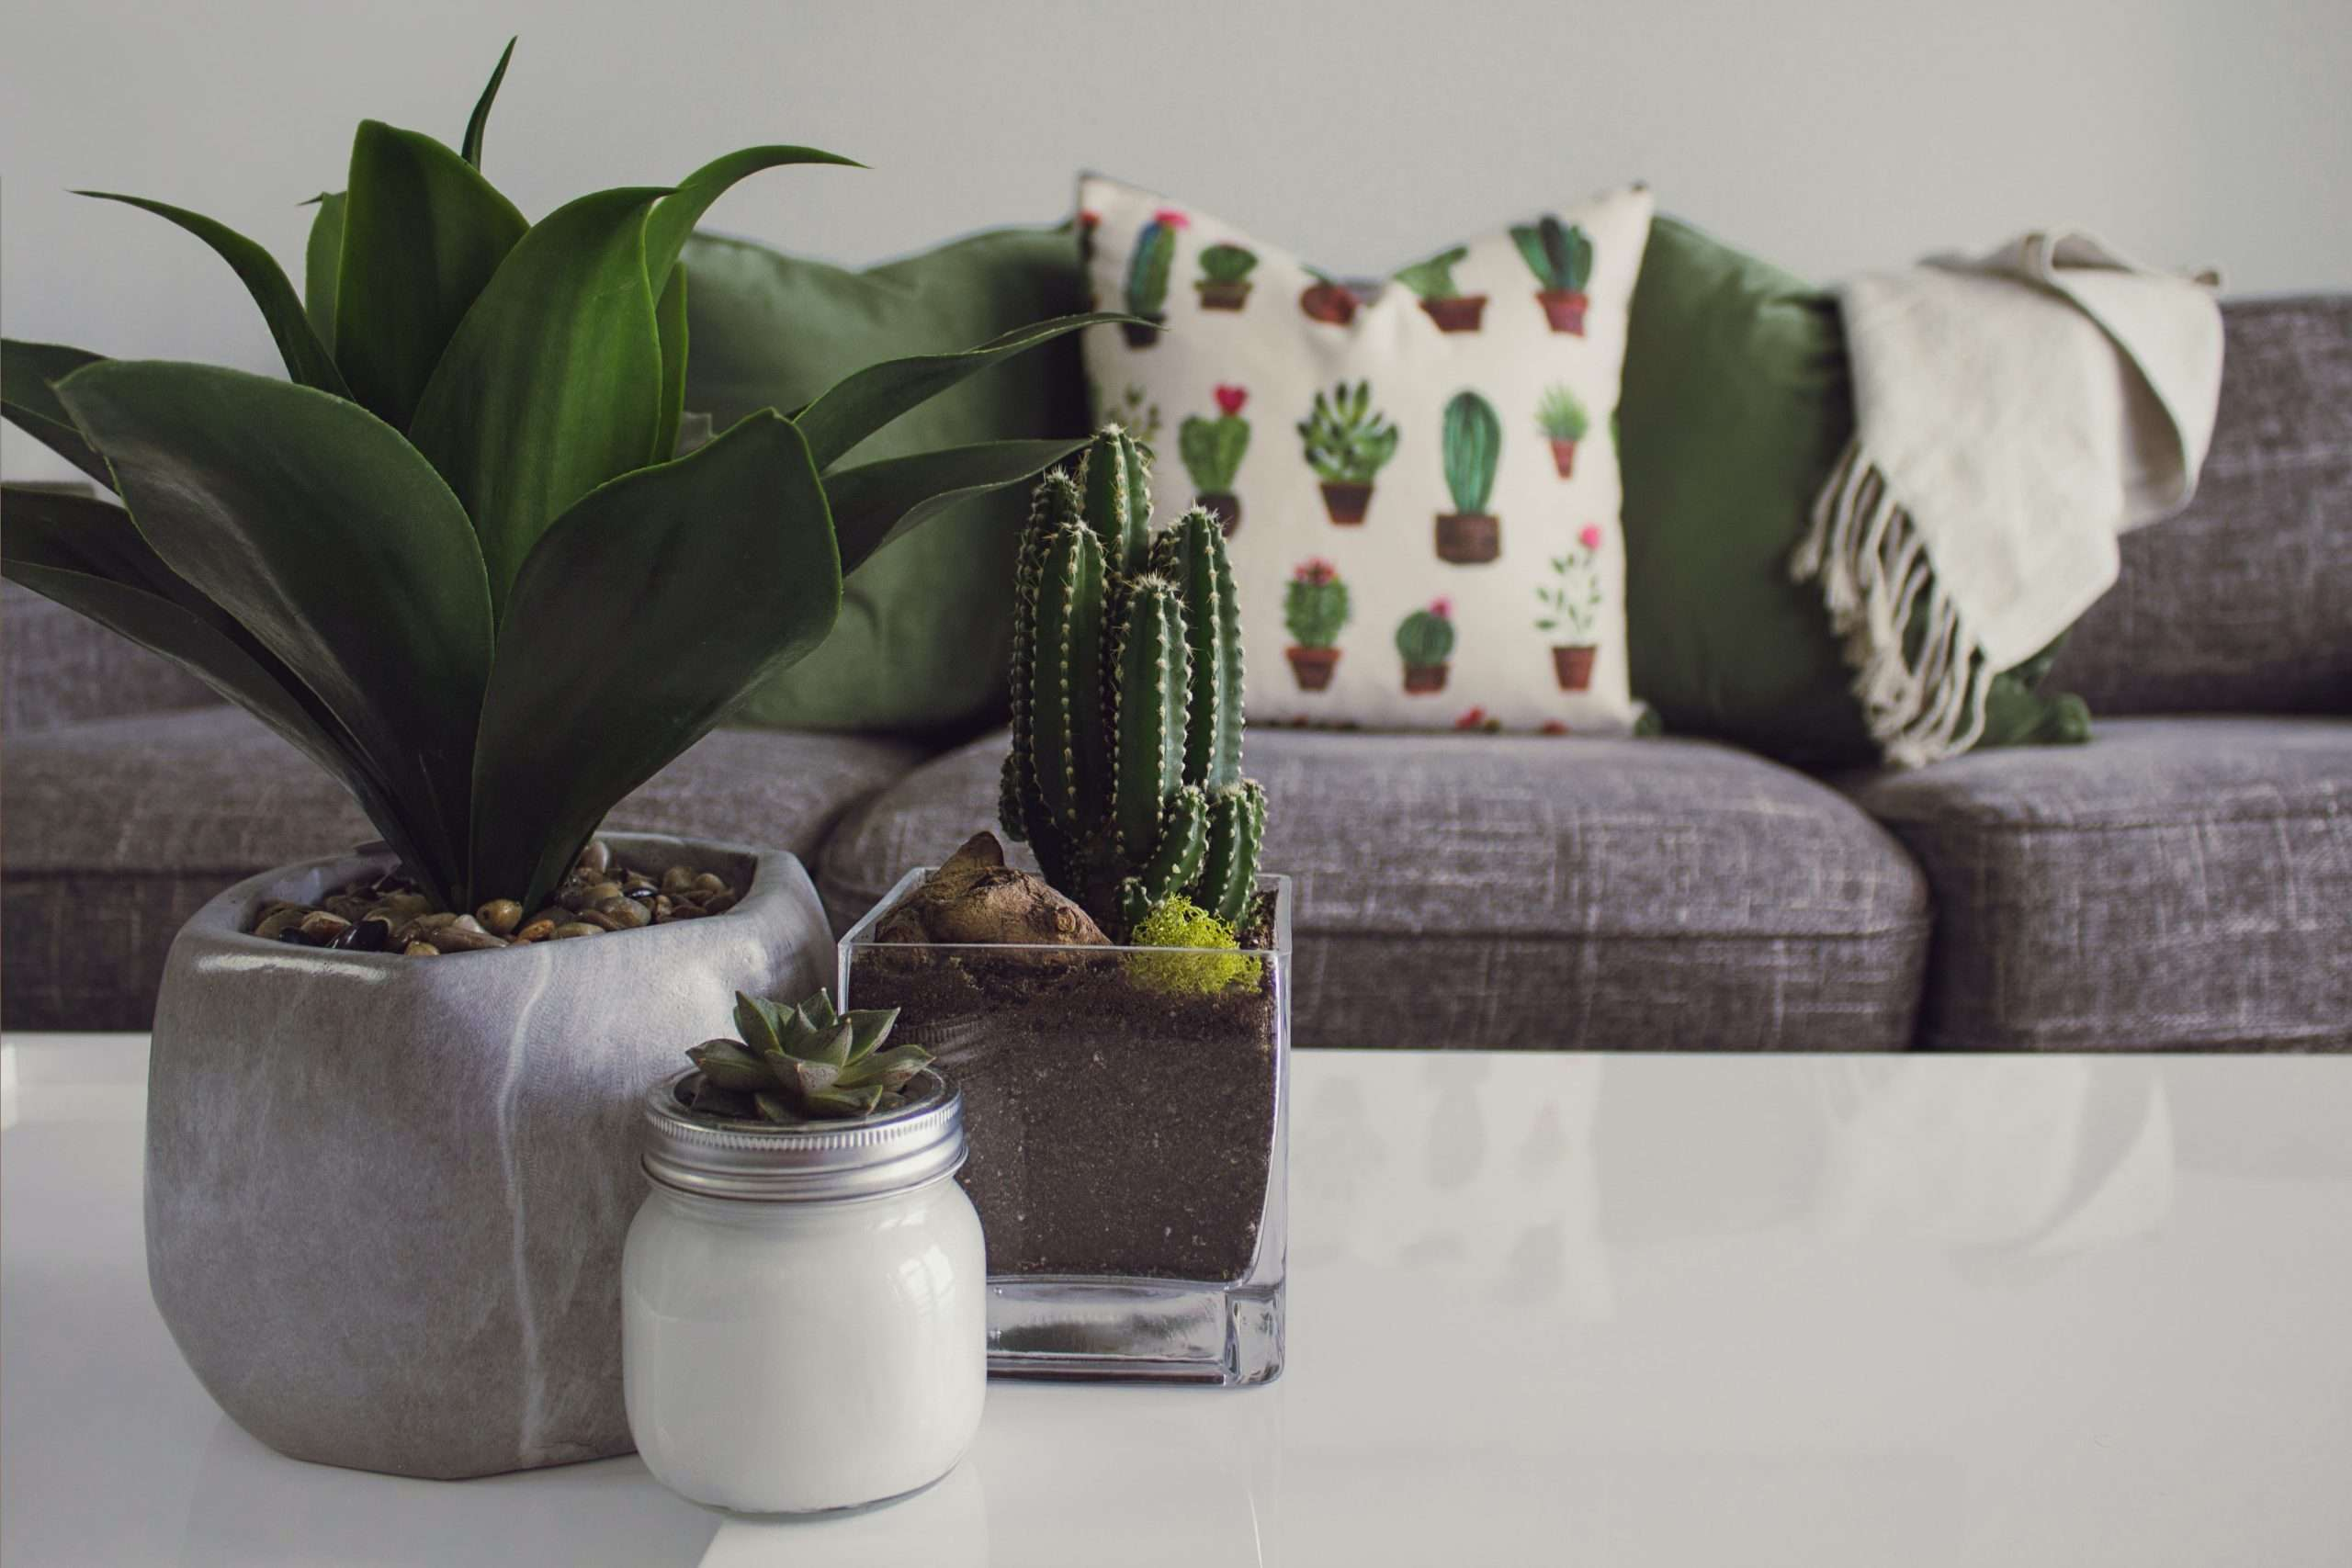 Sofa with pillows and plants on coffee table